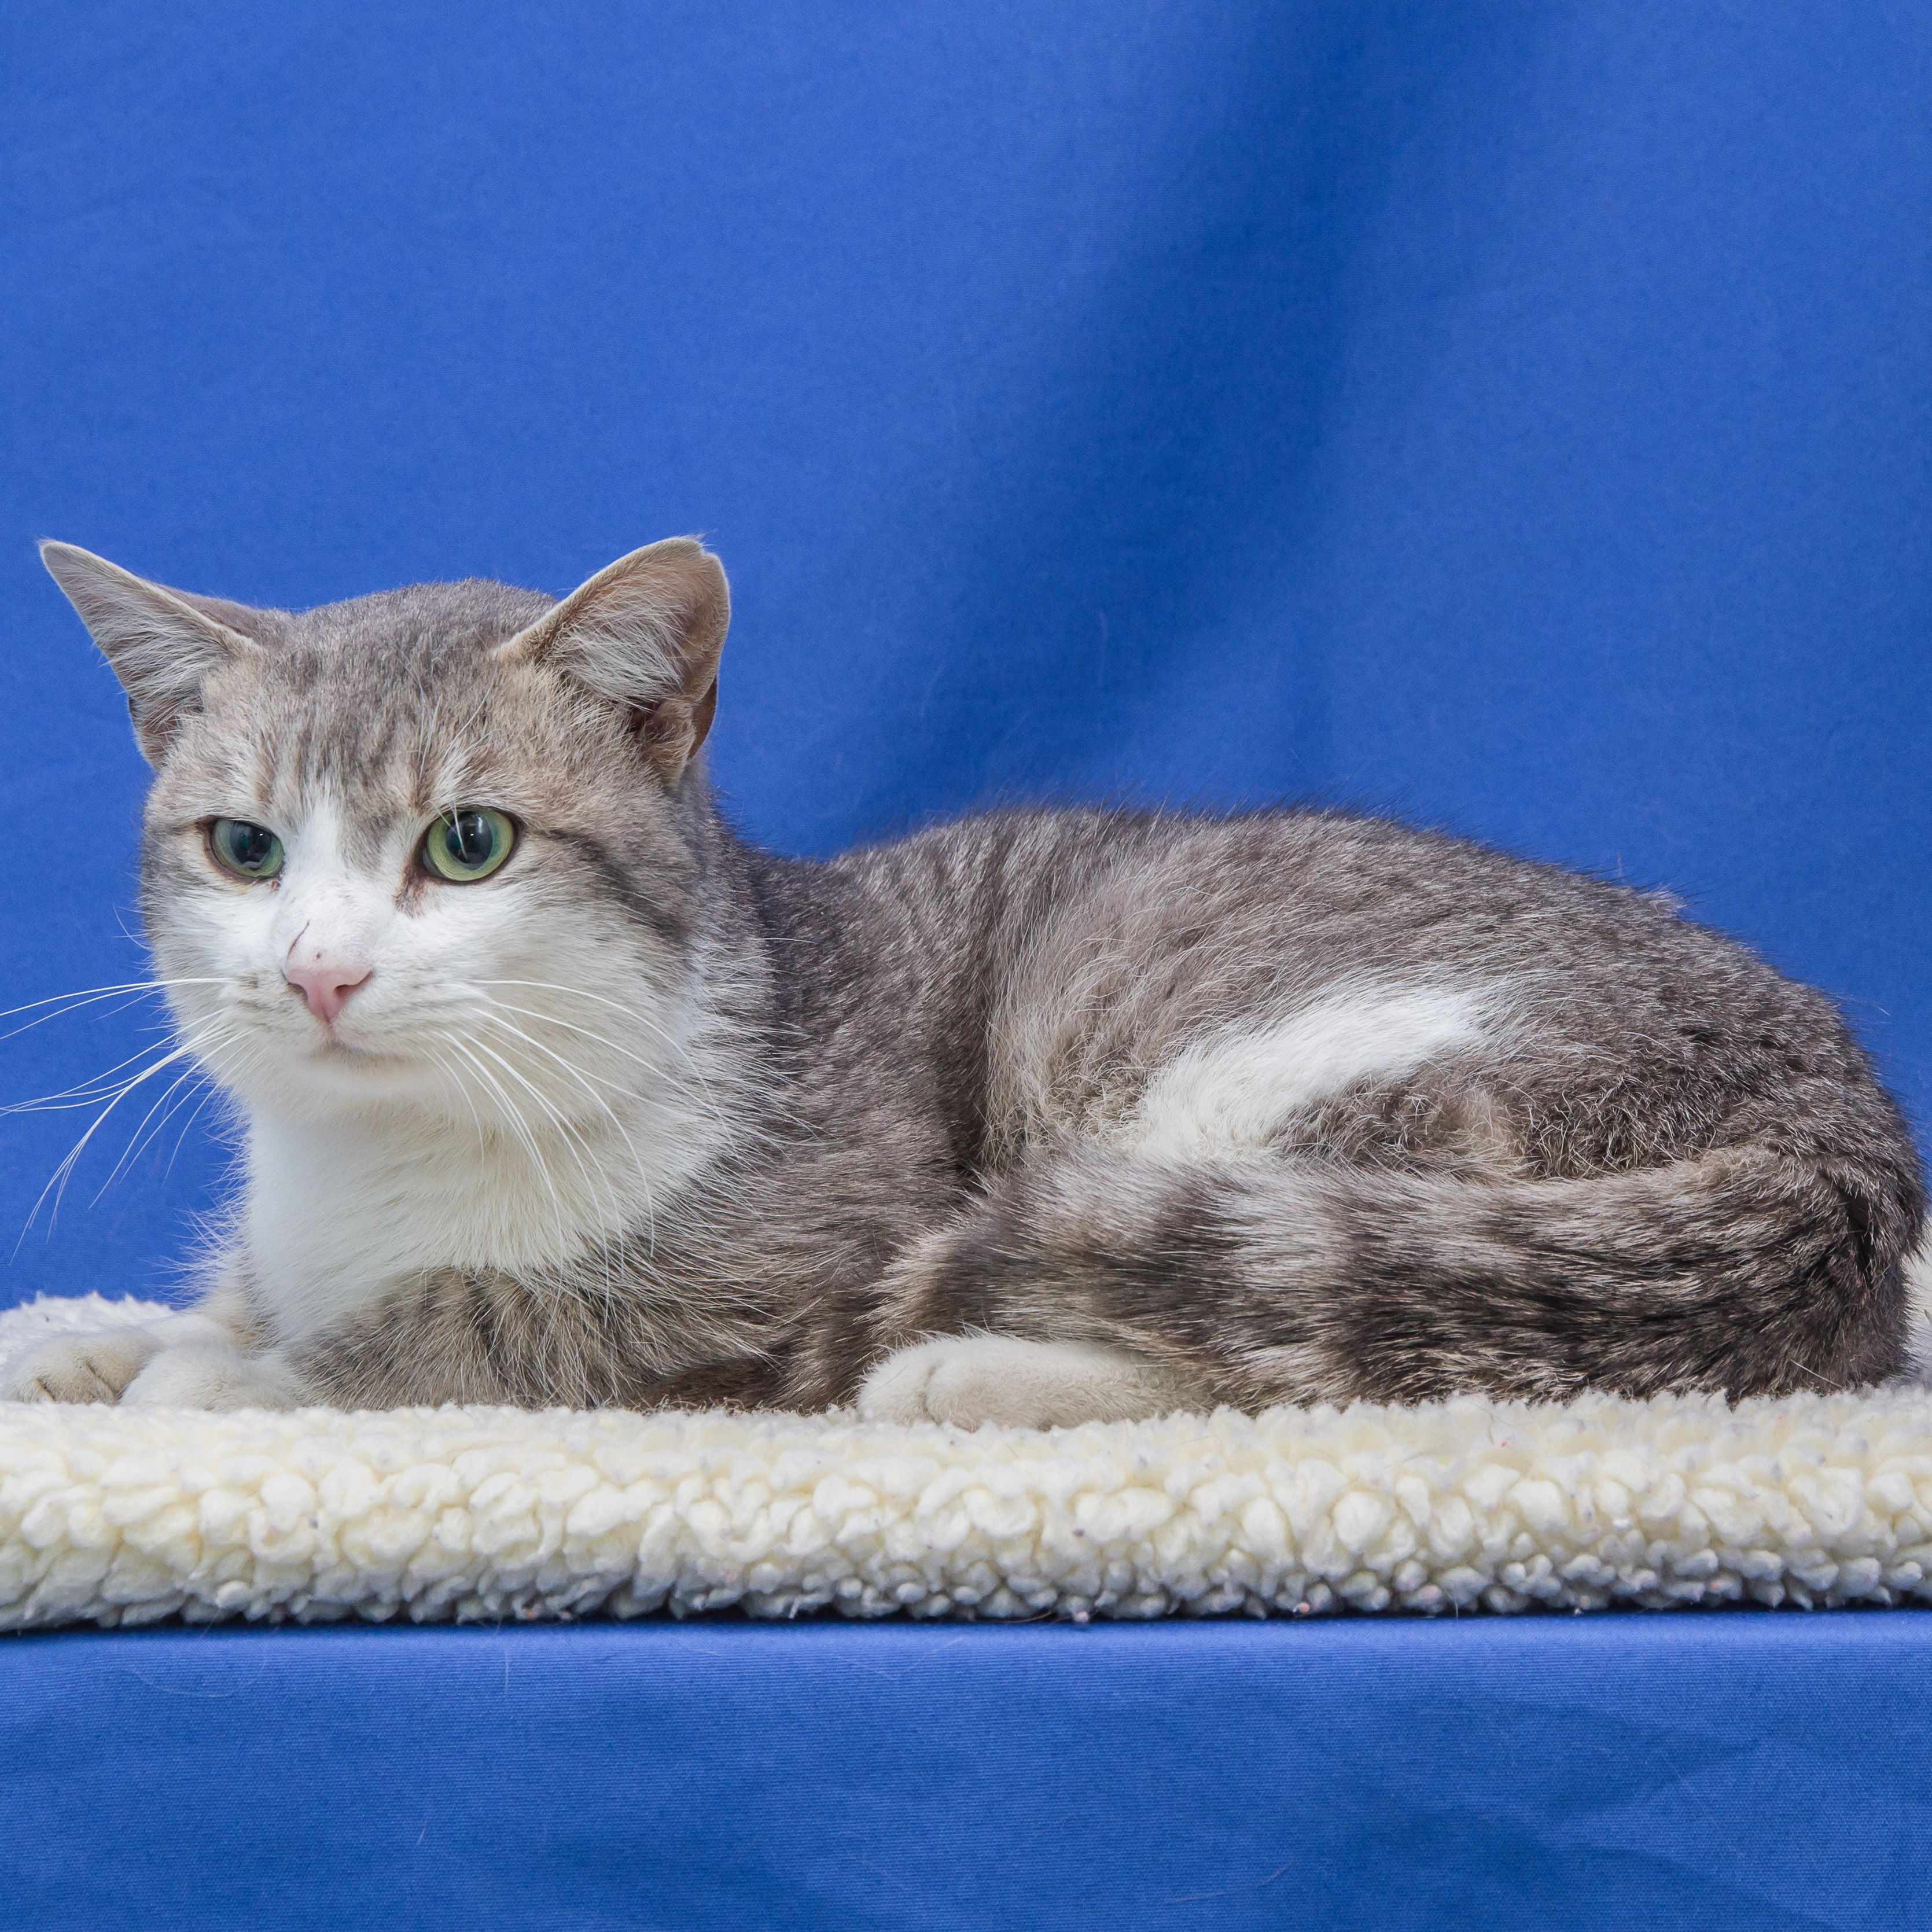 Silver Fox A 5 Year Old Male Needs A New Foreverhome Opt2adopt Kittylove Adoptme Humane Society Of Greater Dayton Animals Humane Society Pet Adoption